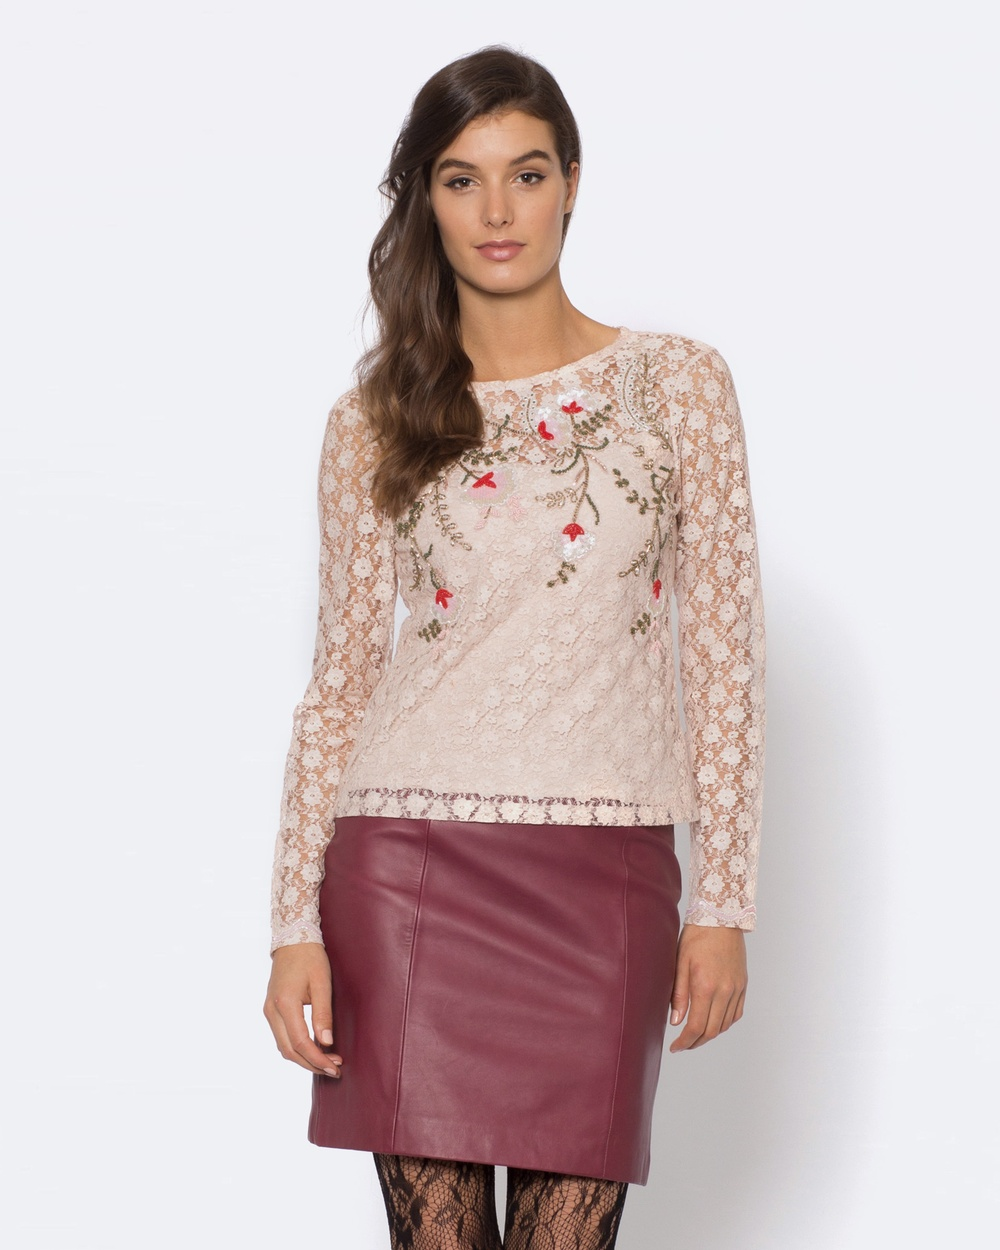 Alannah Hill Dance With The Flowers Top Tops Pink Dance With The Flowers Top